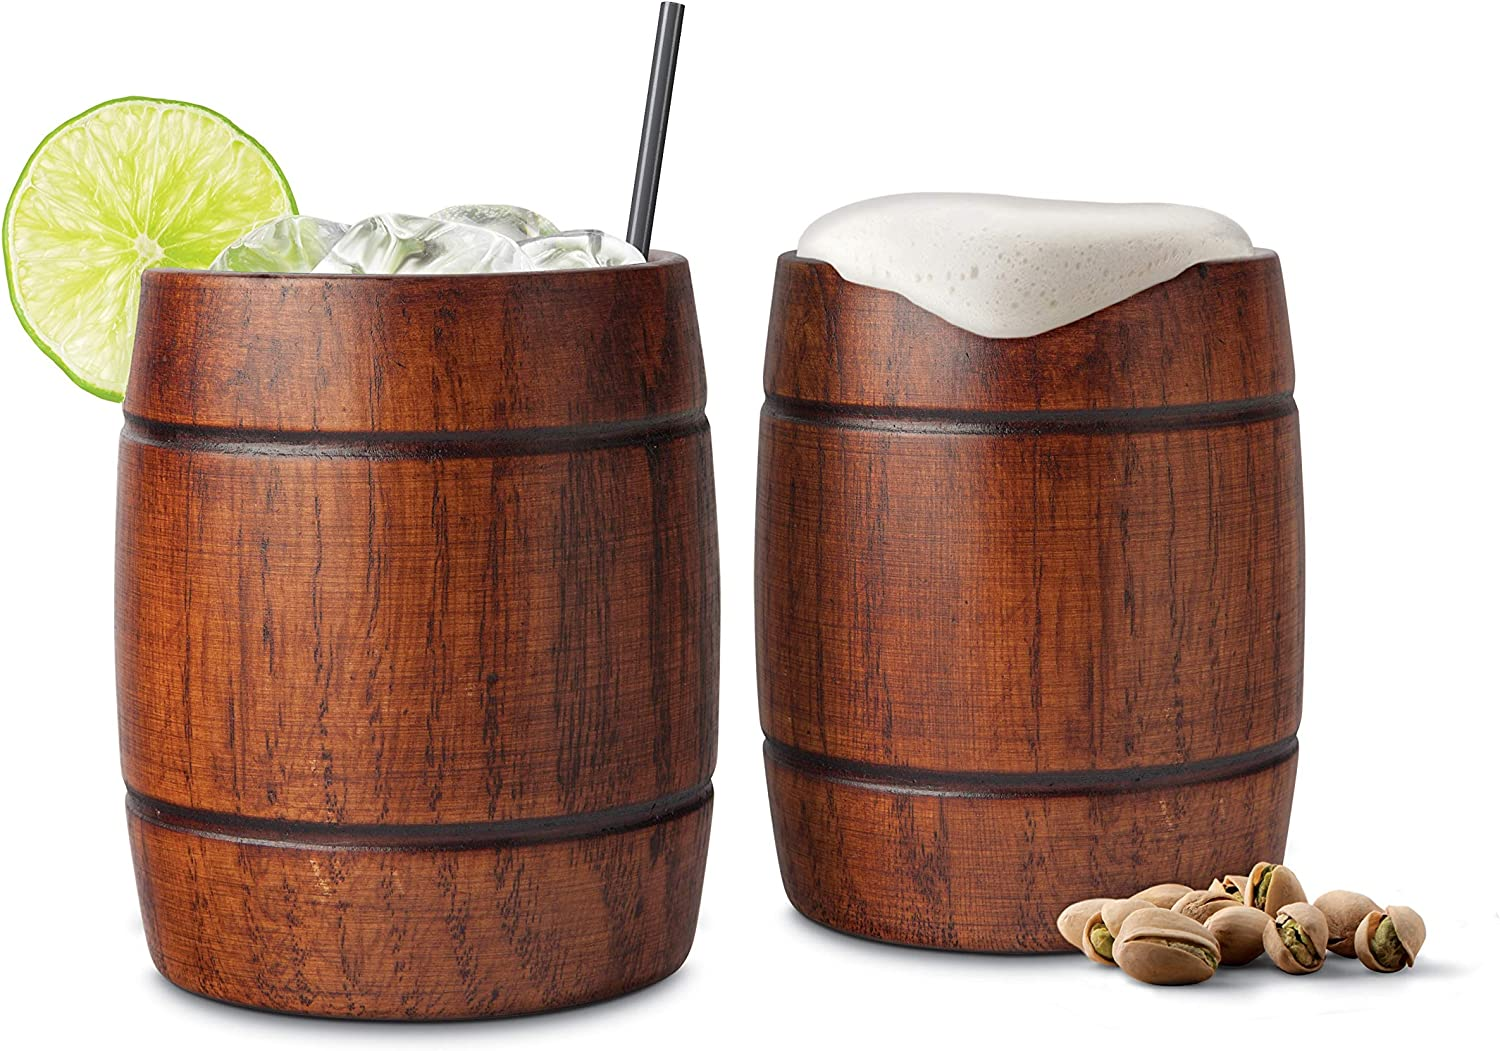 Final Touch Wood Barrel Tumblers, Set of 2 (GG1002)